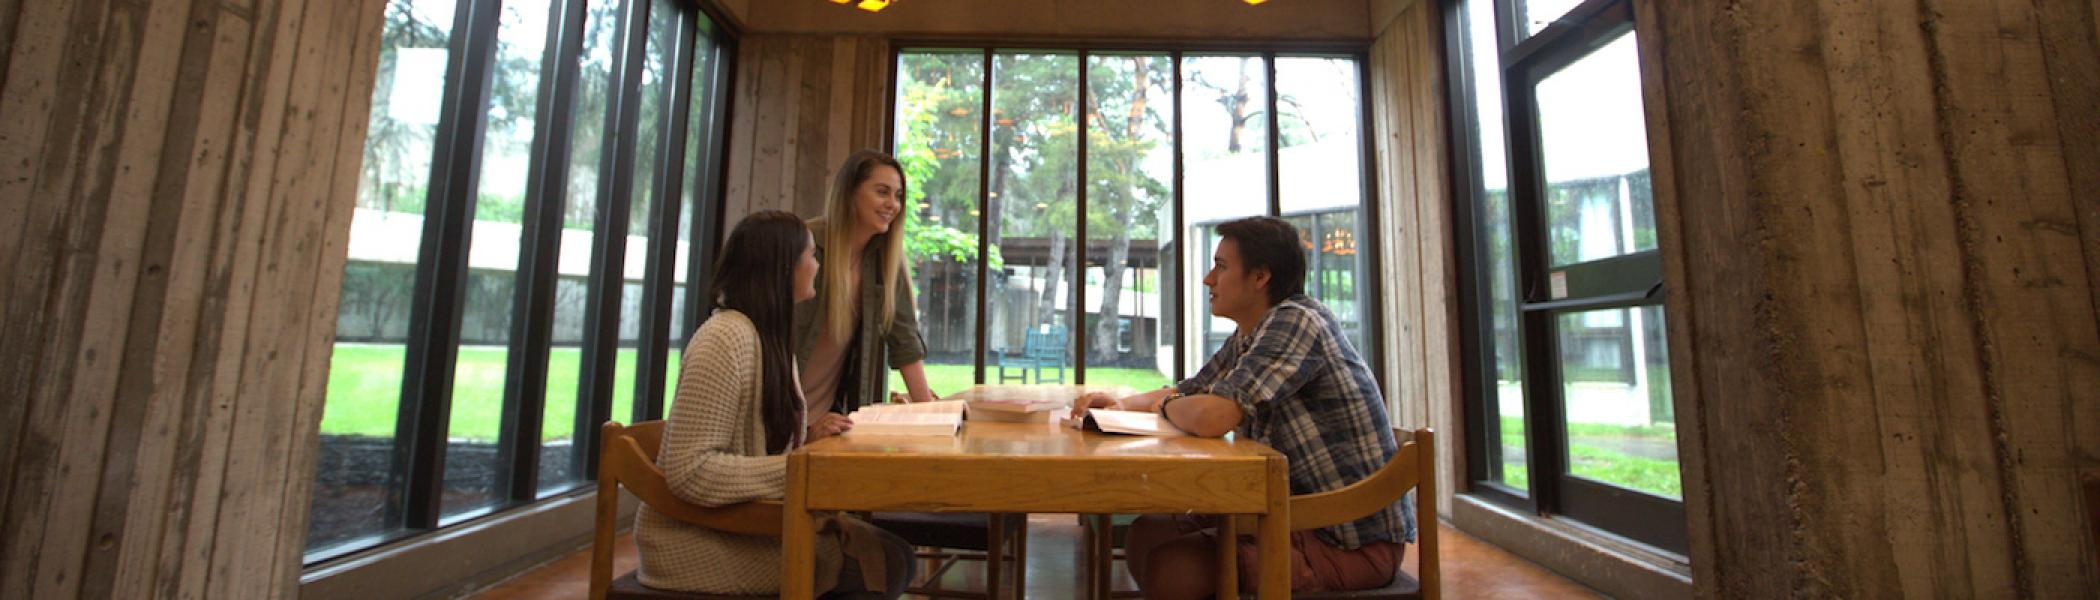 3 students sitting at a table surrounded by windows conversing with each other